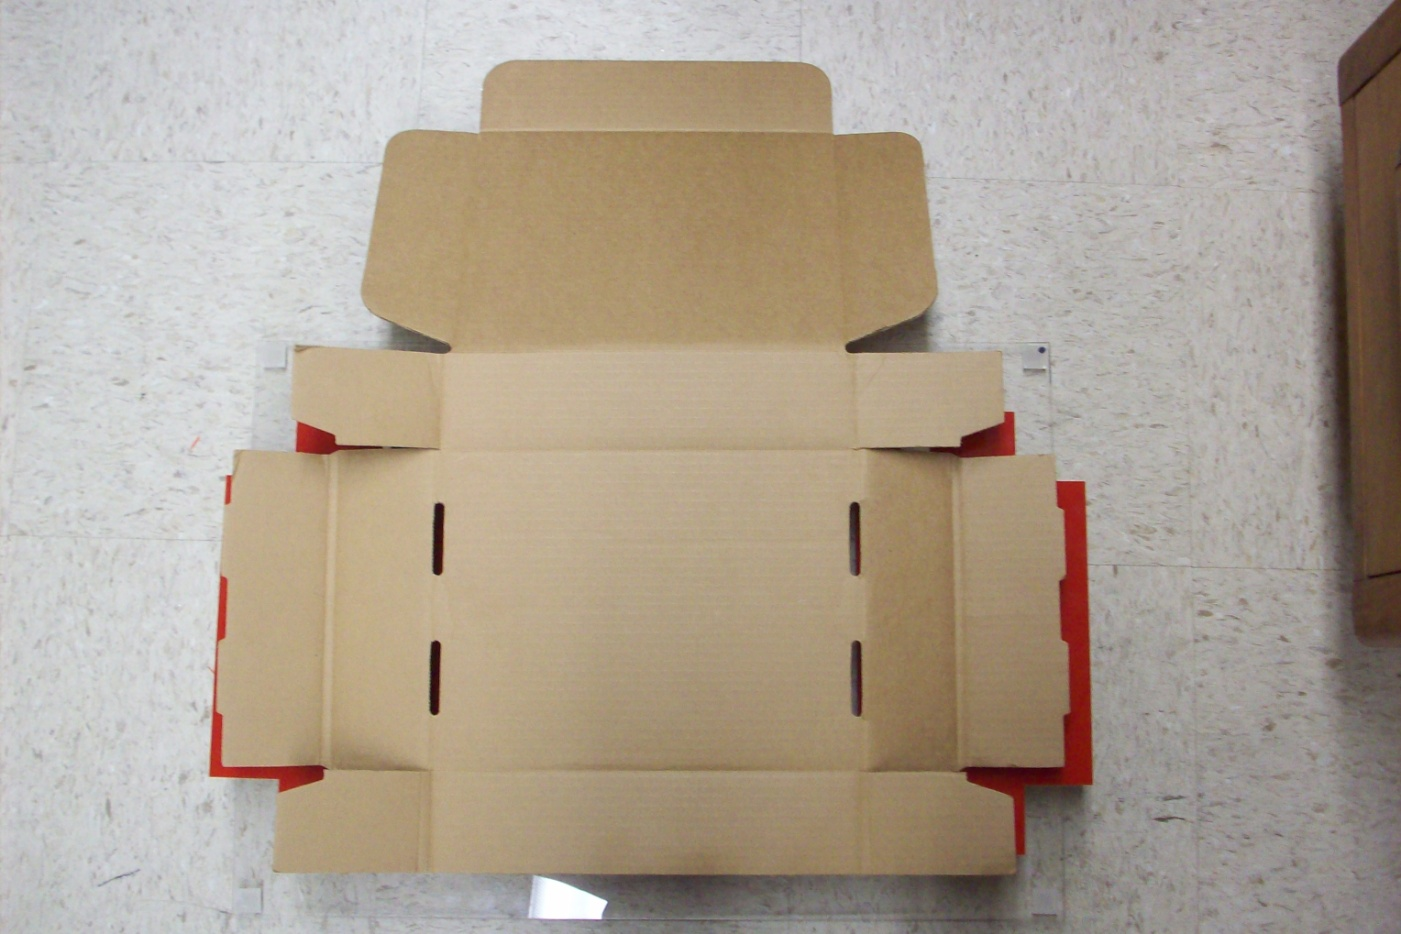 13 Cardboard Box Design Templates Images